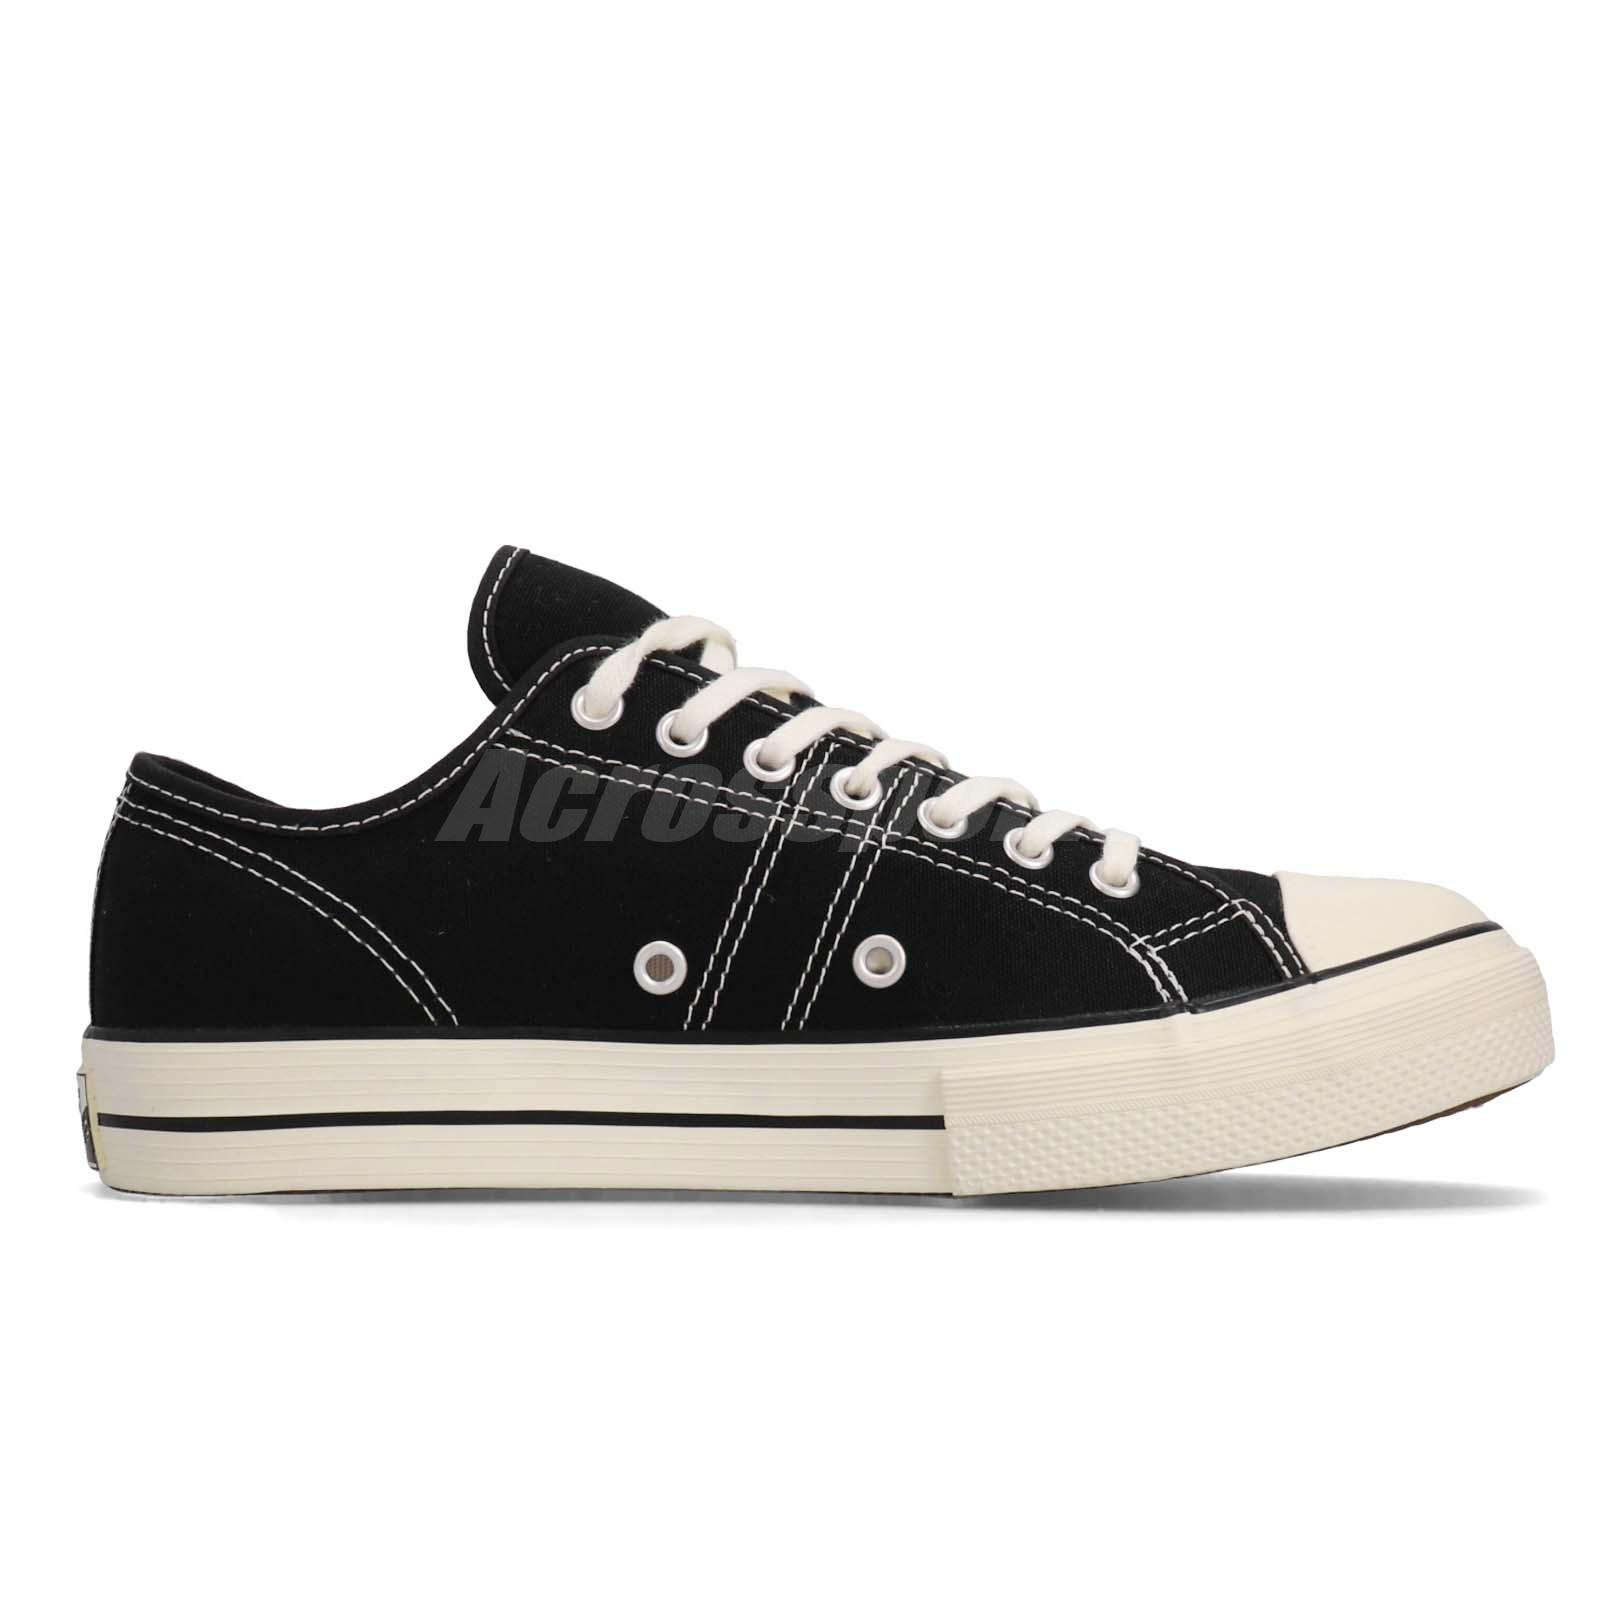 7db0e07f5d24 Converse Chuck Taylor Lucky Star OX Black Egret Men Women Unisex ...